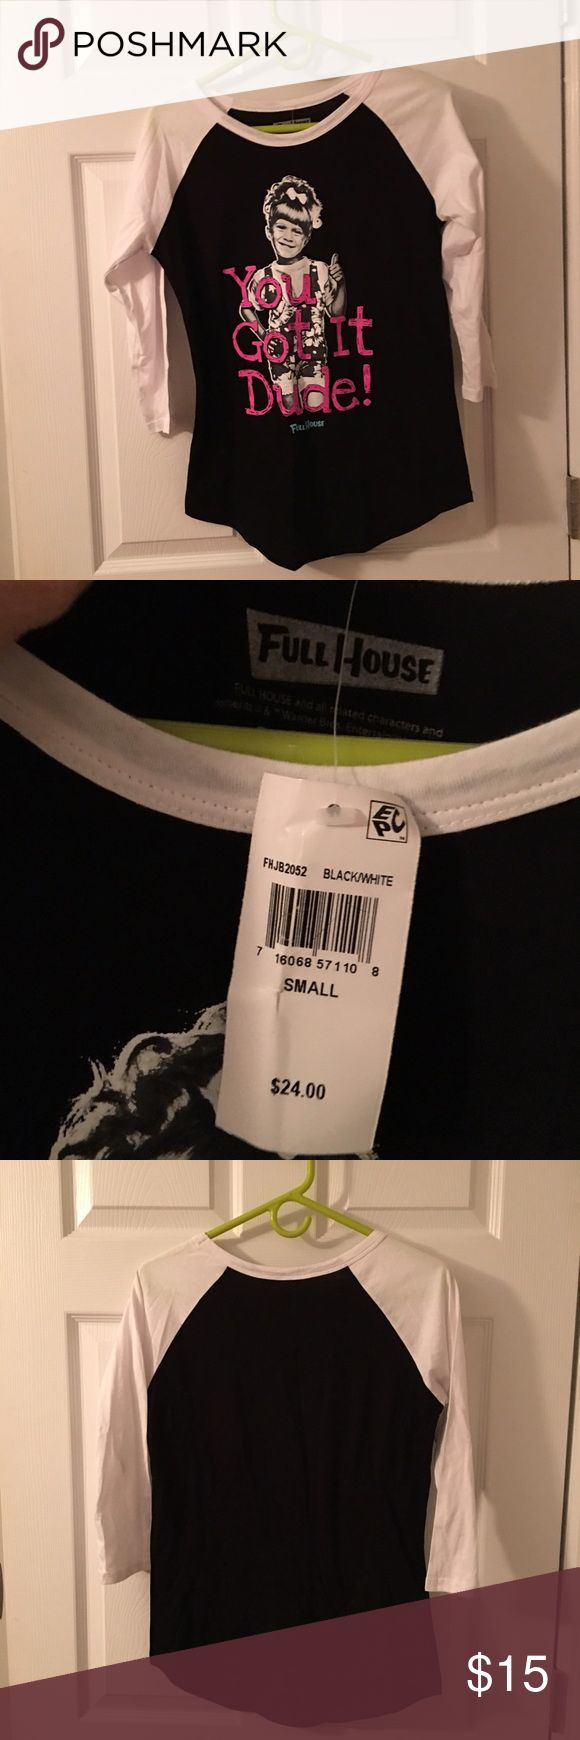 Full house shirt  Michelle tanner from Macy's Full house shirt  Michelle tanner full house Tops Muscle Tees